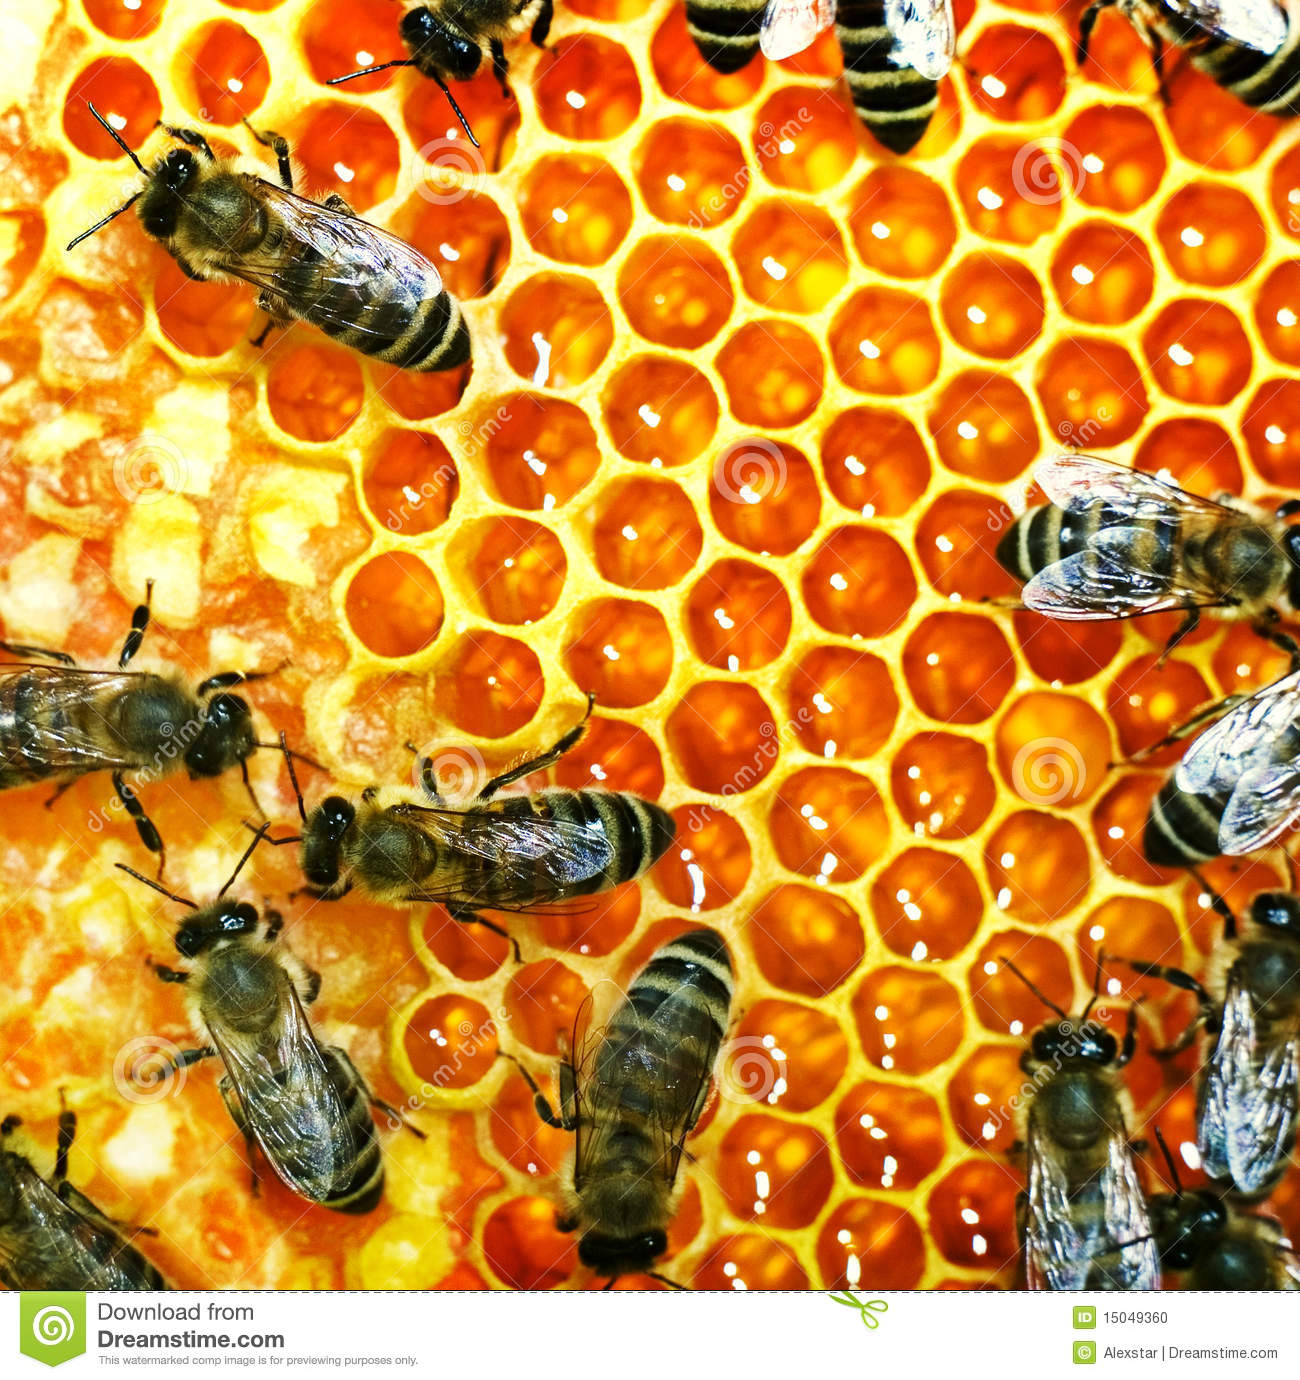 Honey bees on the hive